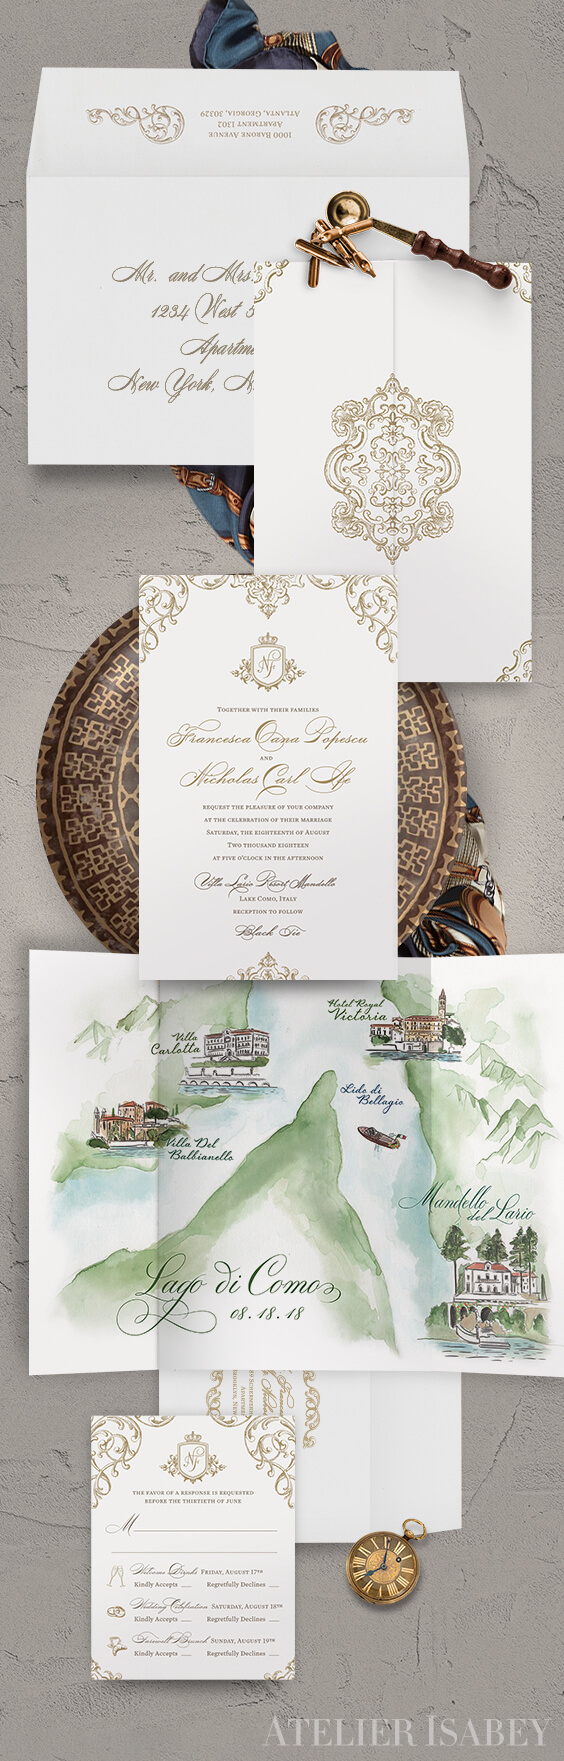 Classic wedding invitation with a watercolor map of Lake Como